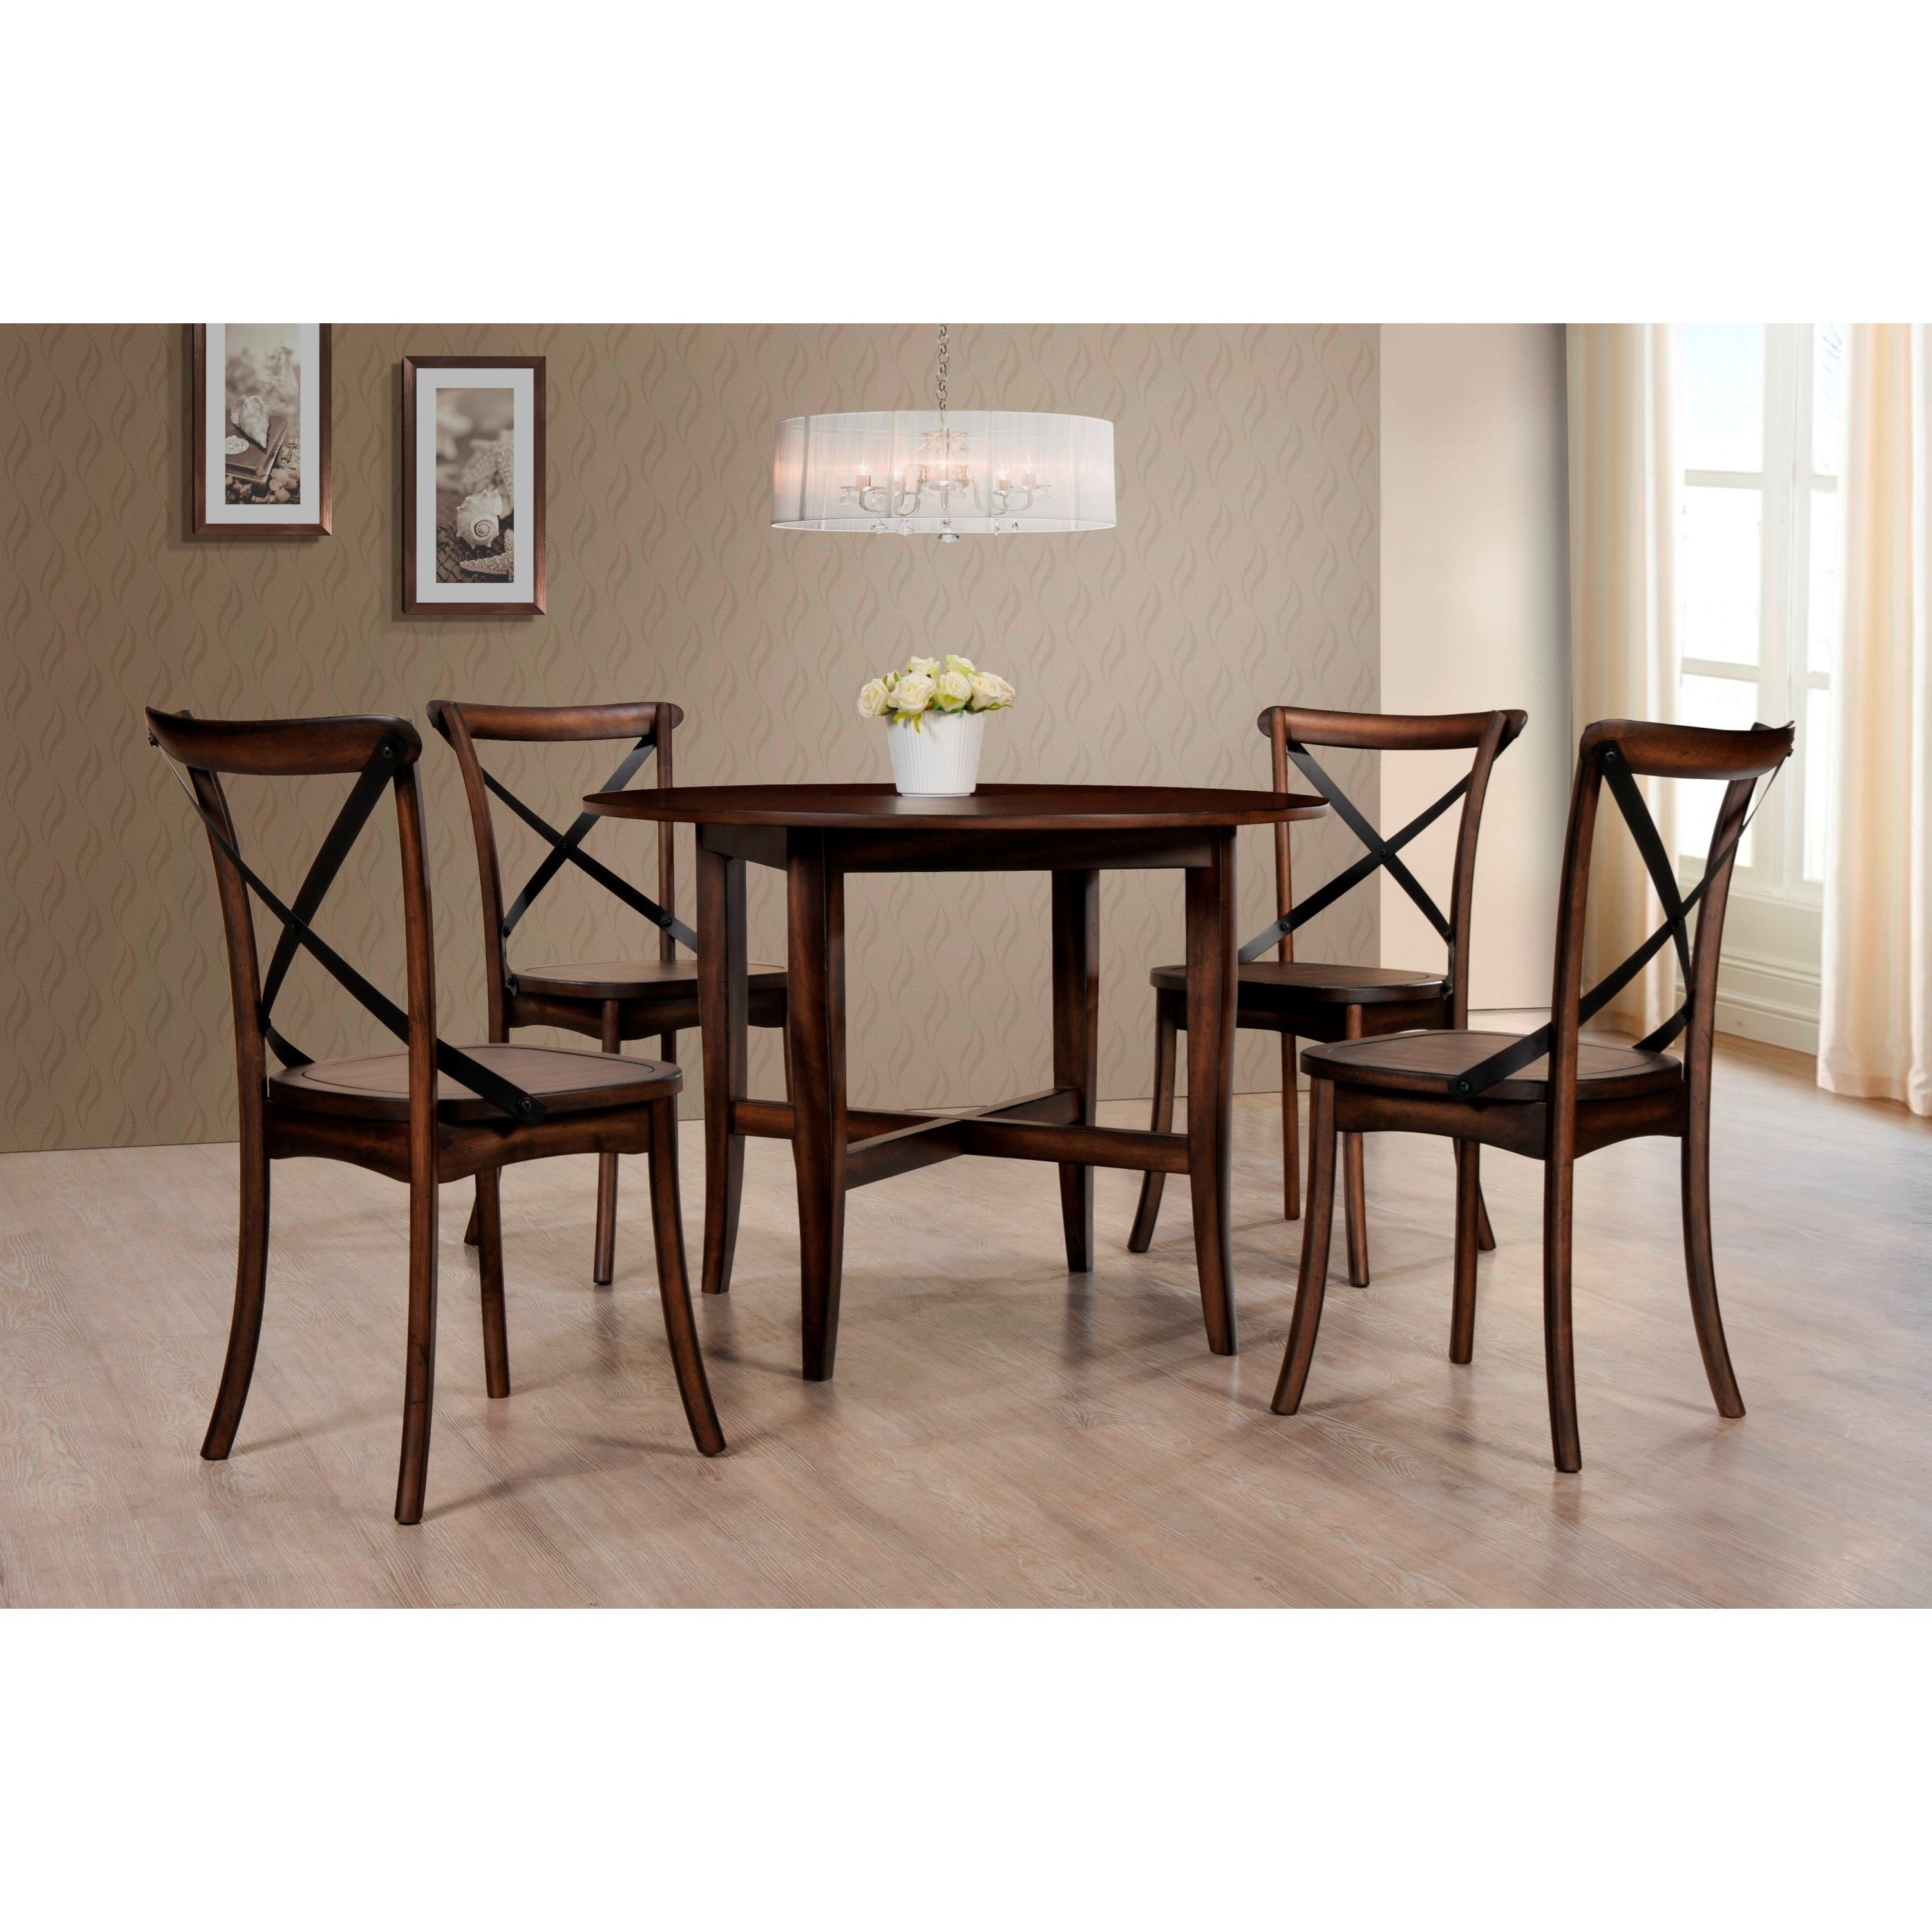 Crown mark farris 2285t 48 dining round table with for Dining table support